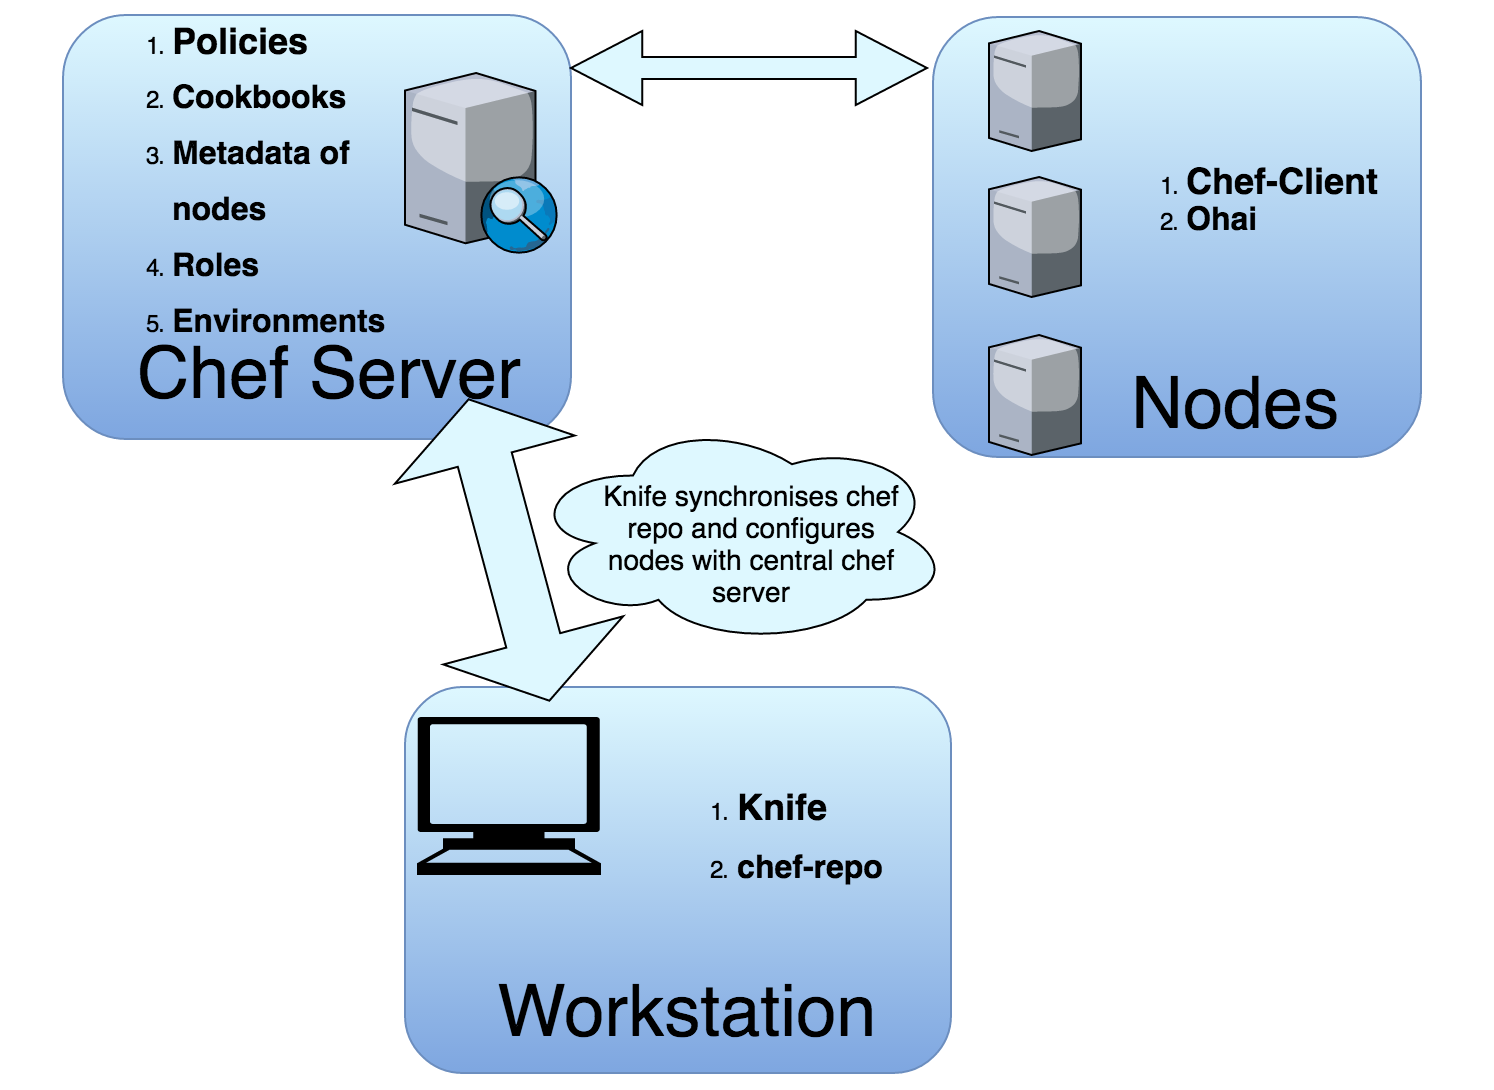 Chef Server, workstation, and nodes